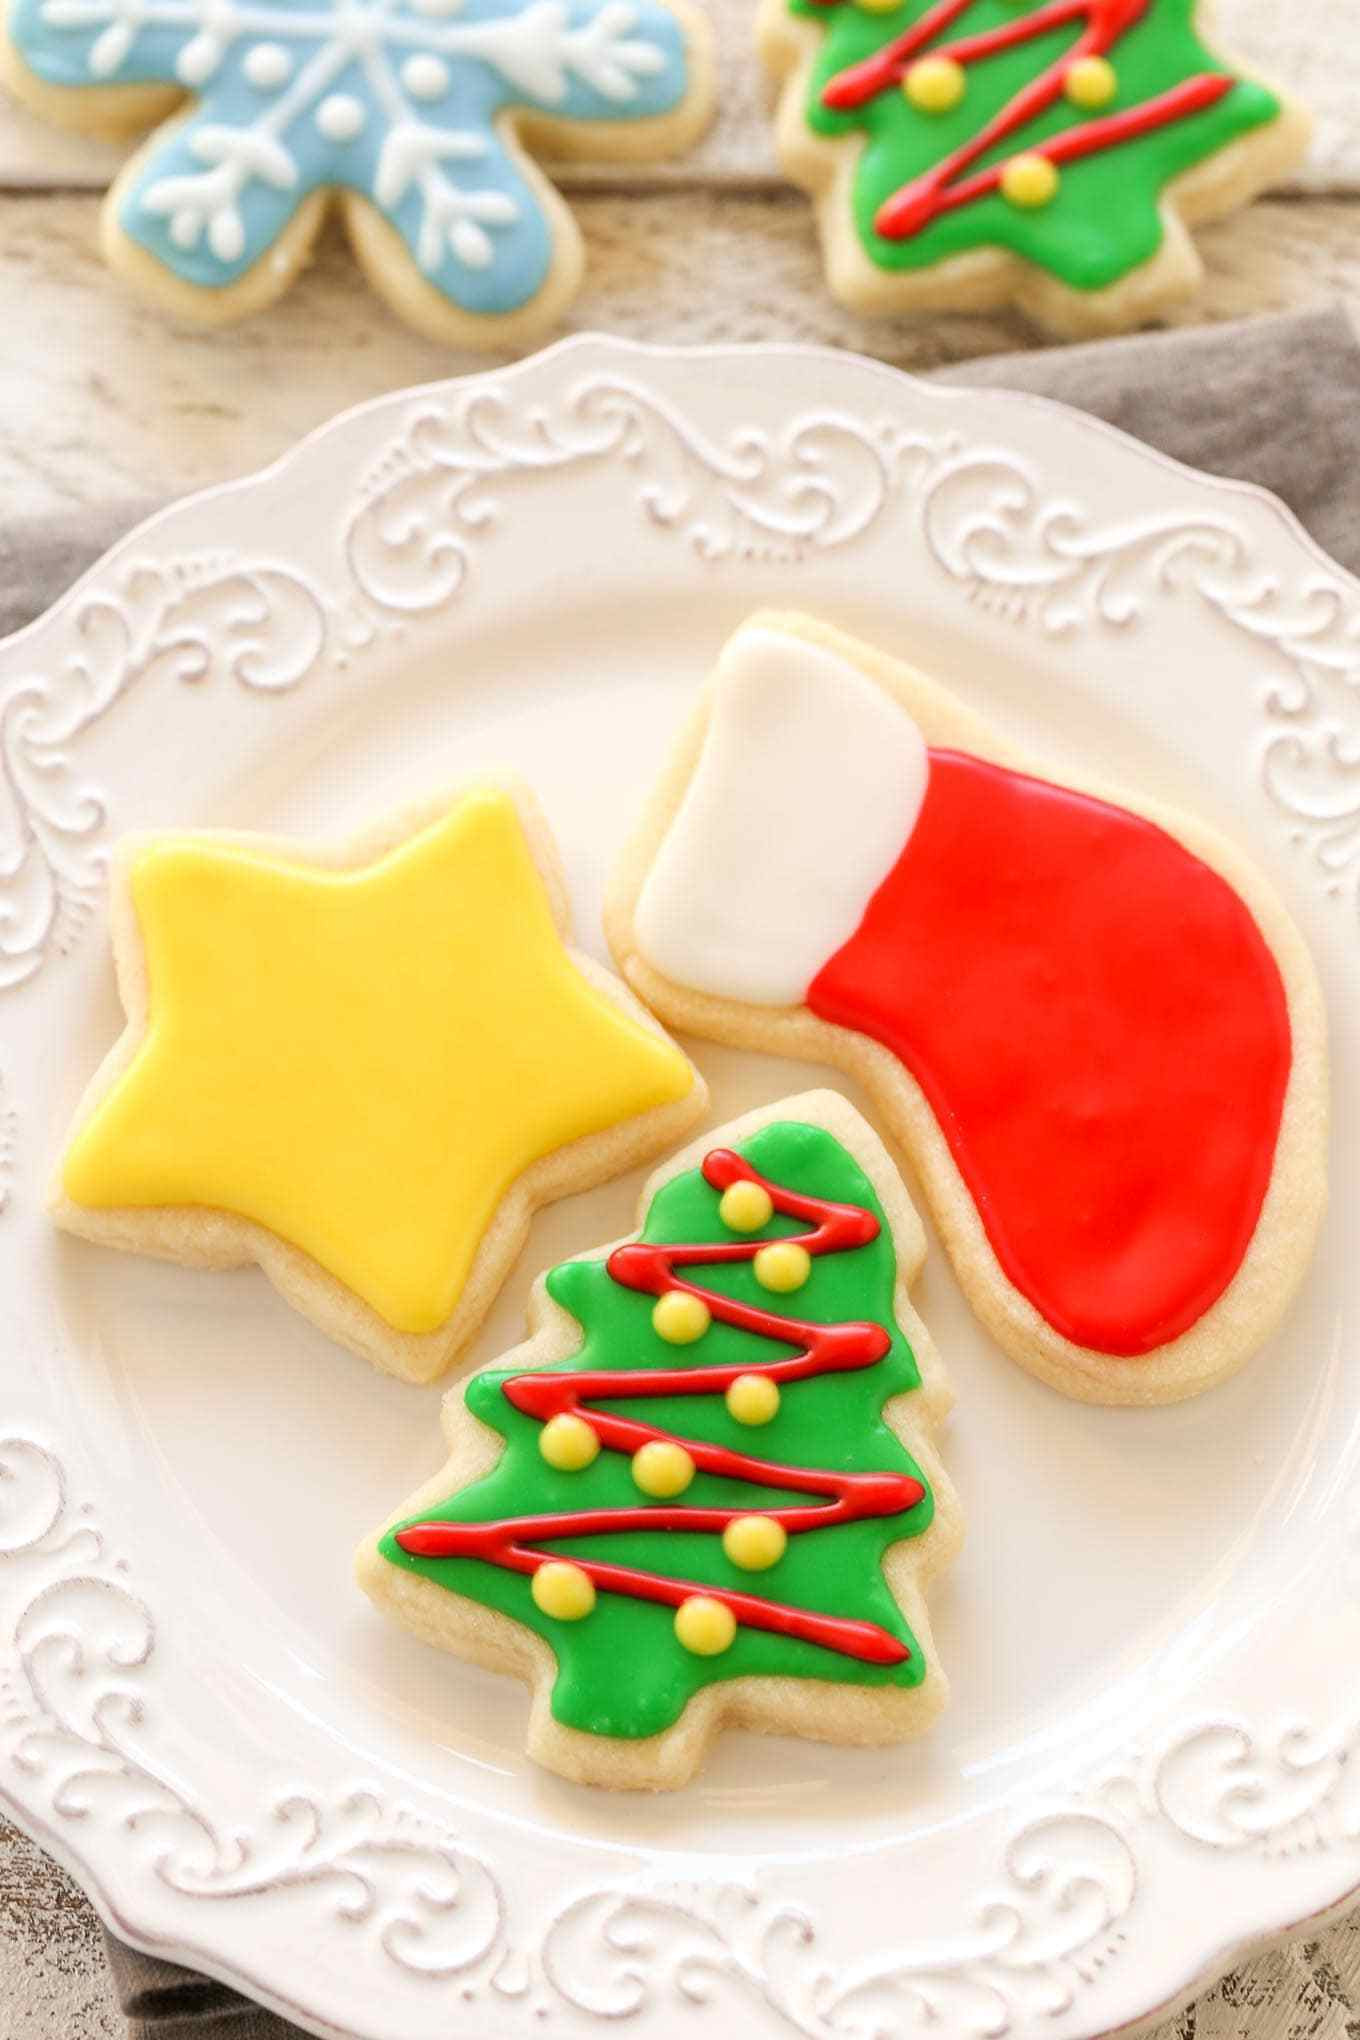 Cutout Christmas Cookies  Soft Christmas Cut Out Sugar Cookies Live Well Bake ten